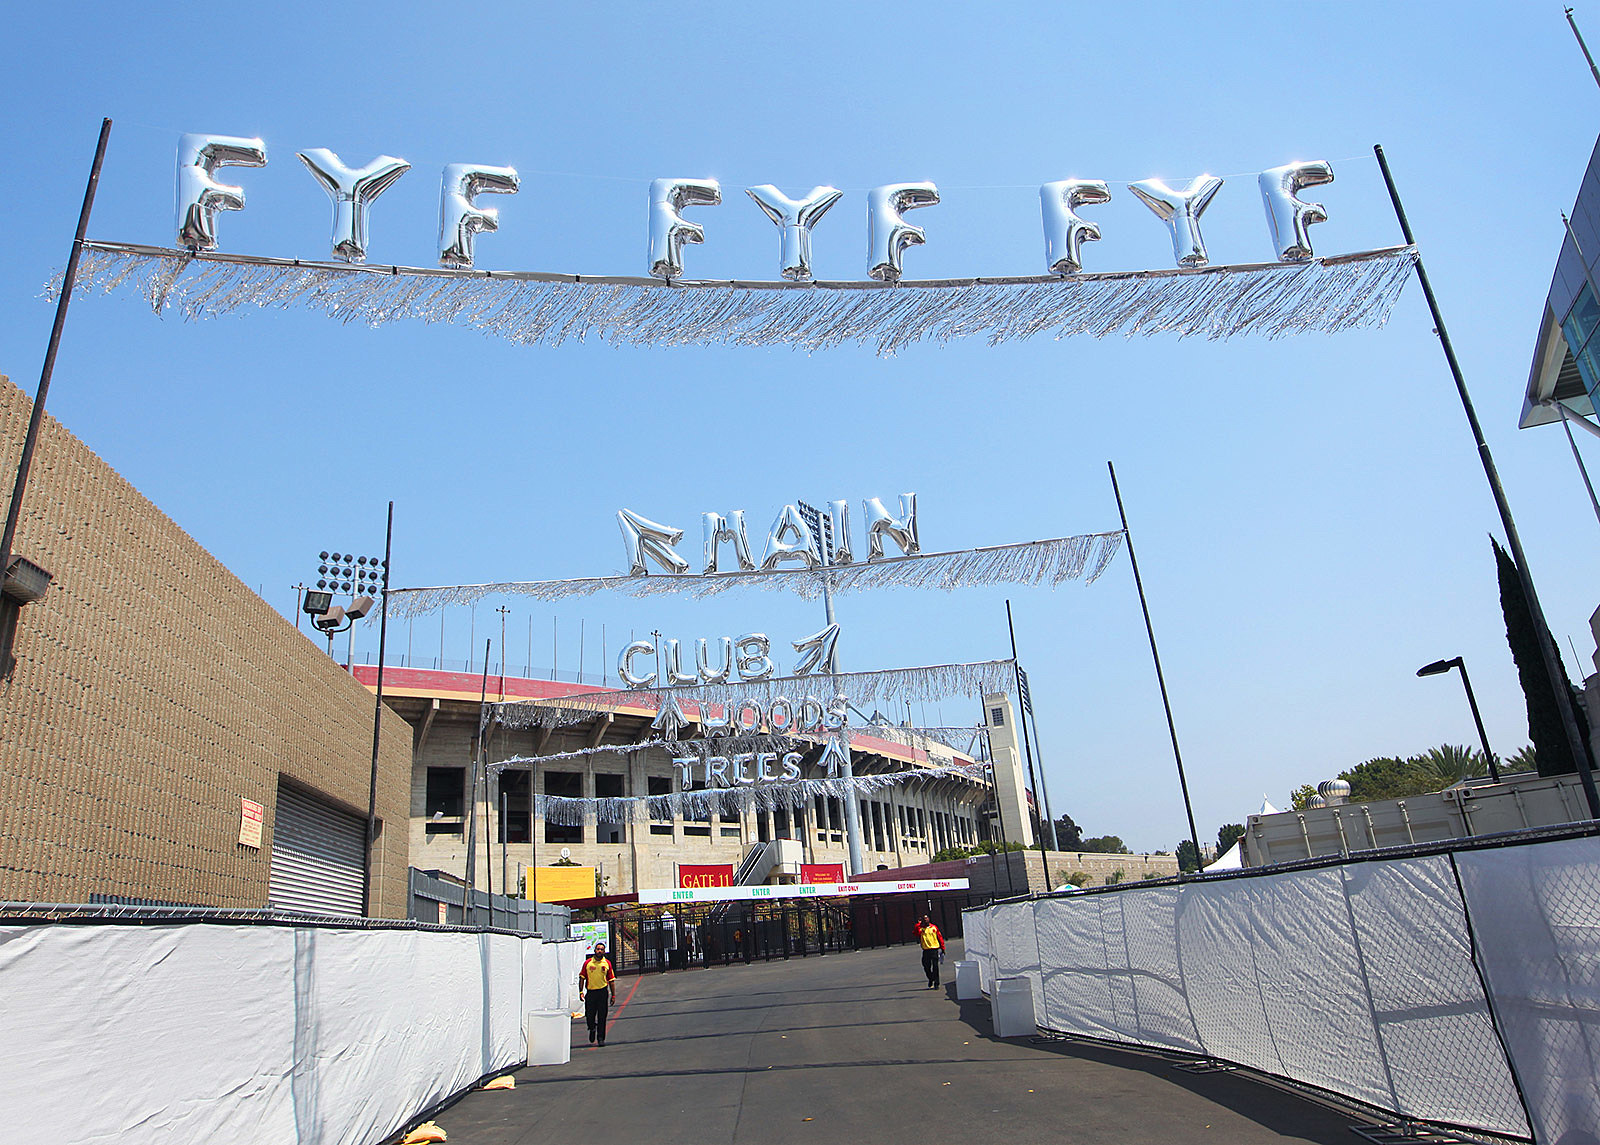 FYF Fest: Missy Elliott, Björk, Frank Ocean, Nine Inch Nails to headline